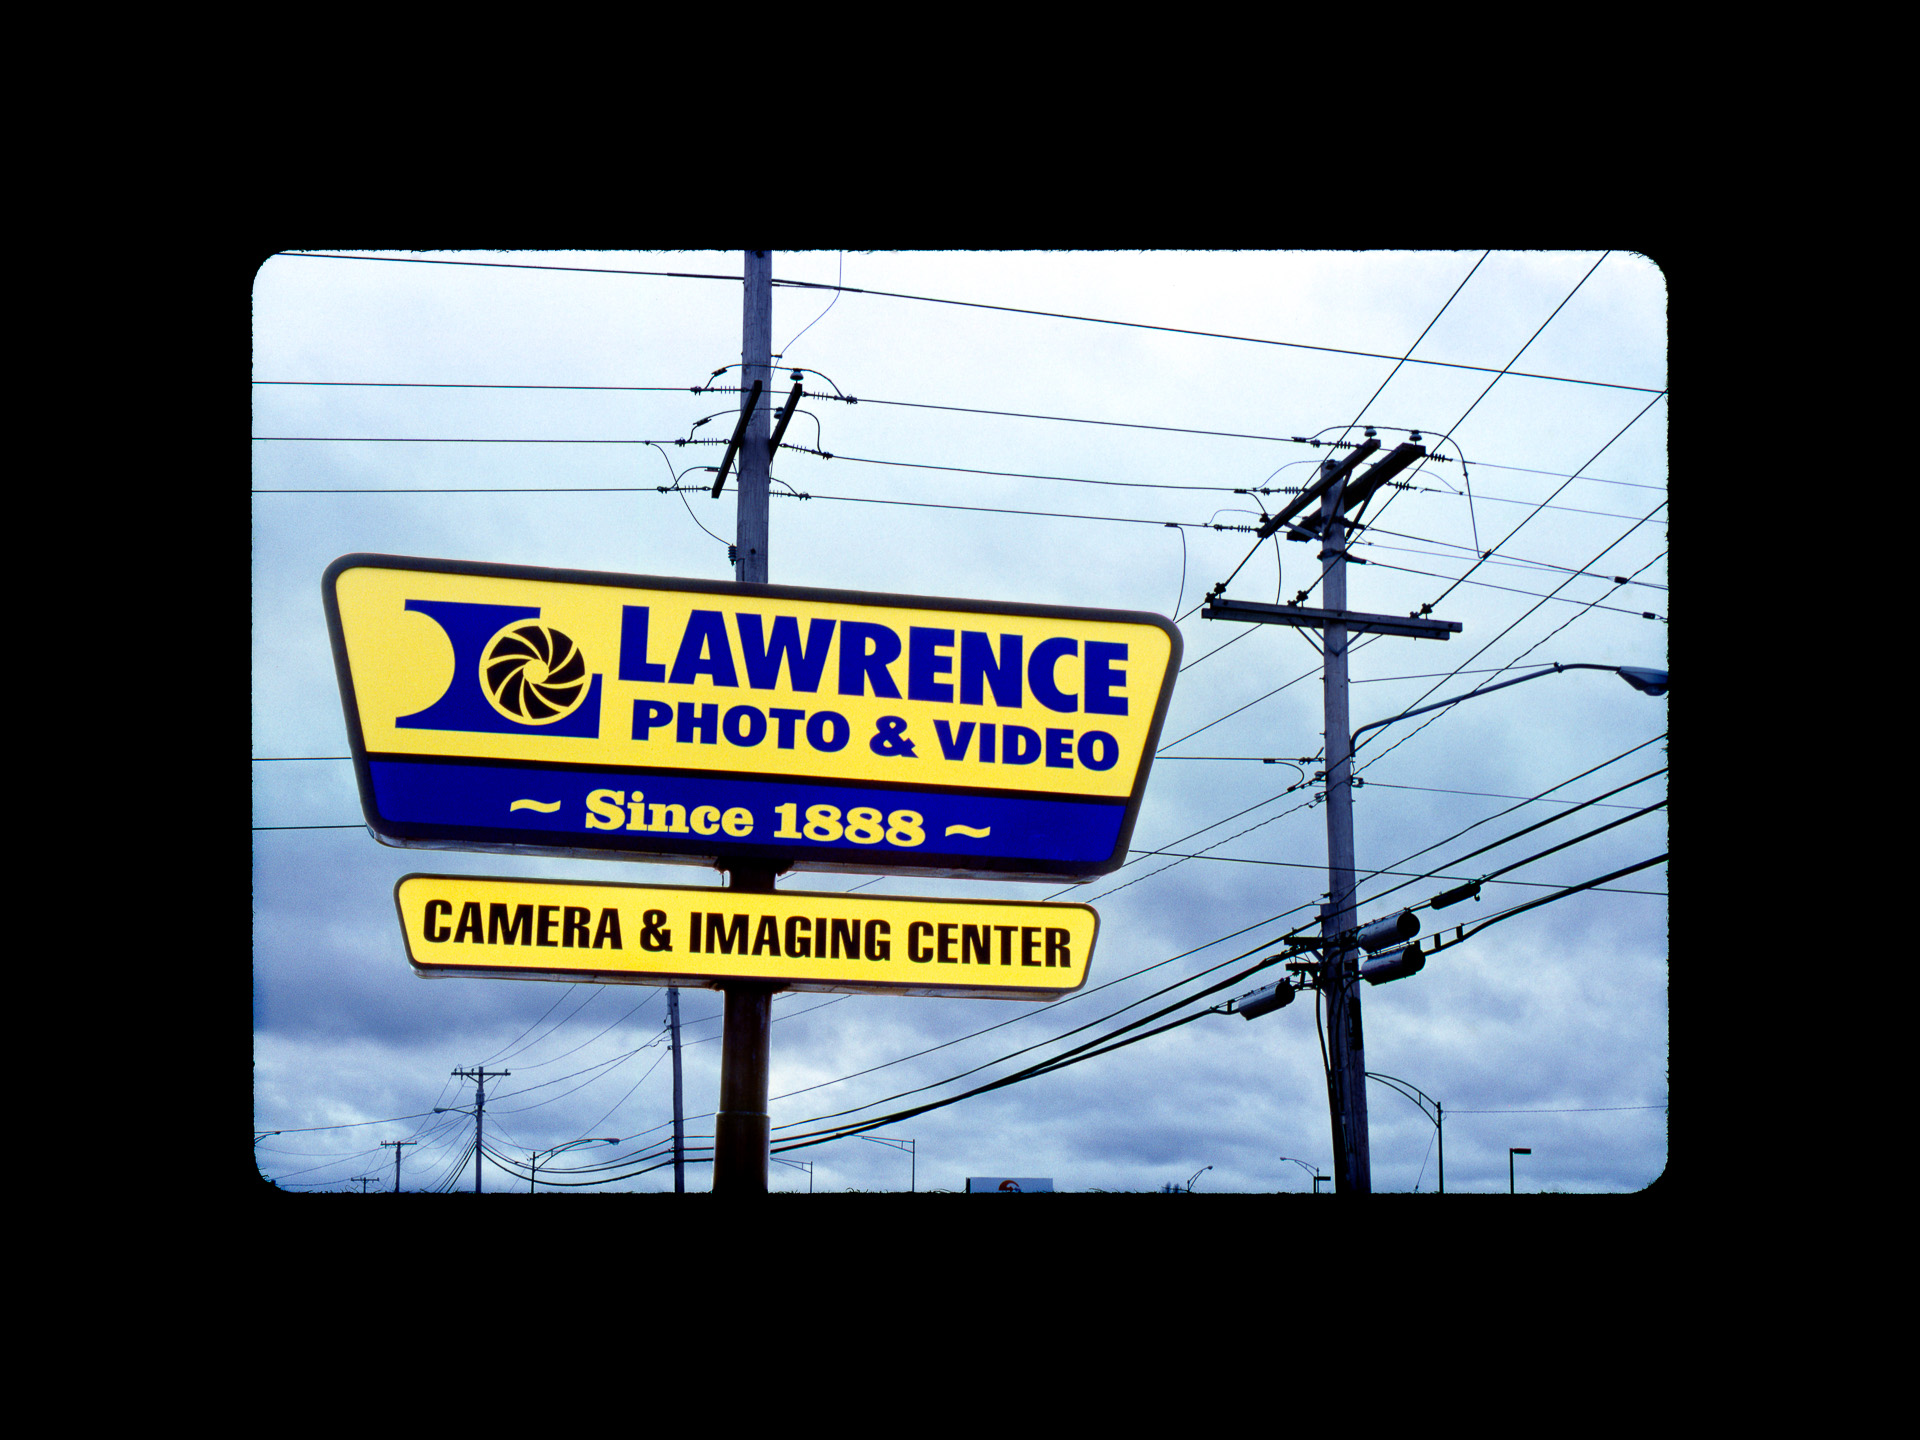 Lawrence Photo & Video in Lawrence, Kansas. Photo ©2010 Stephen Takacs